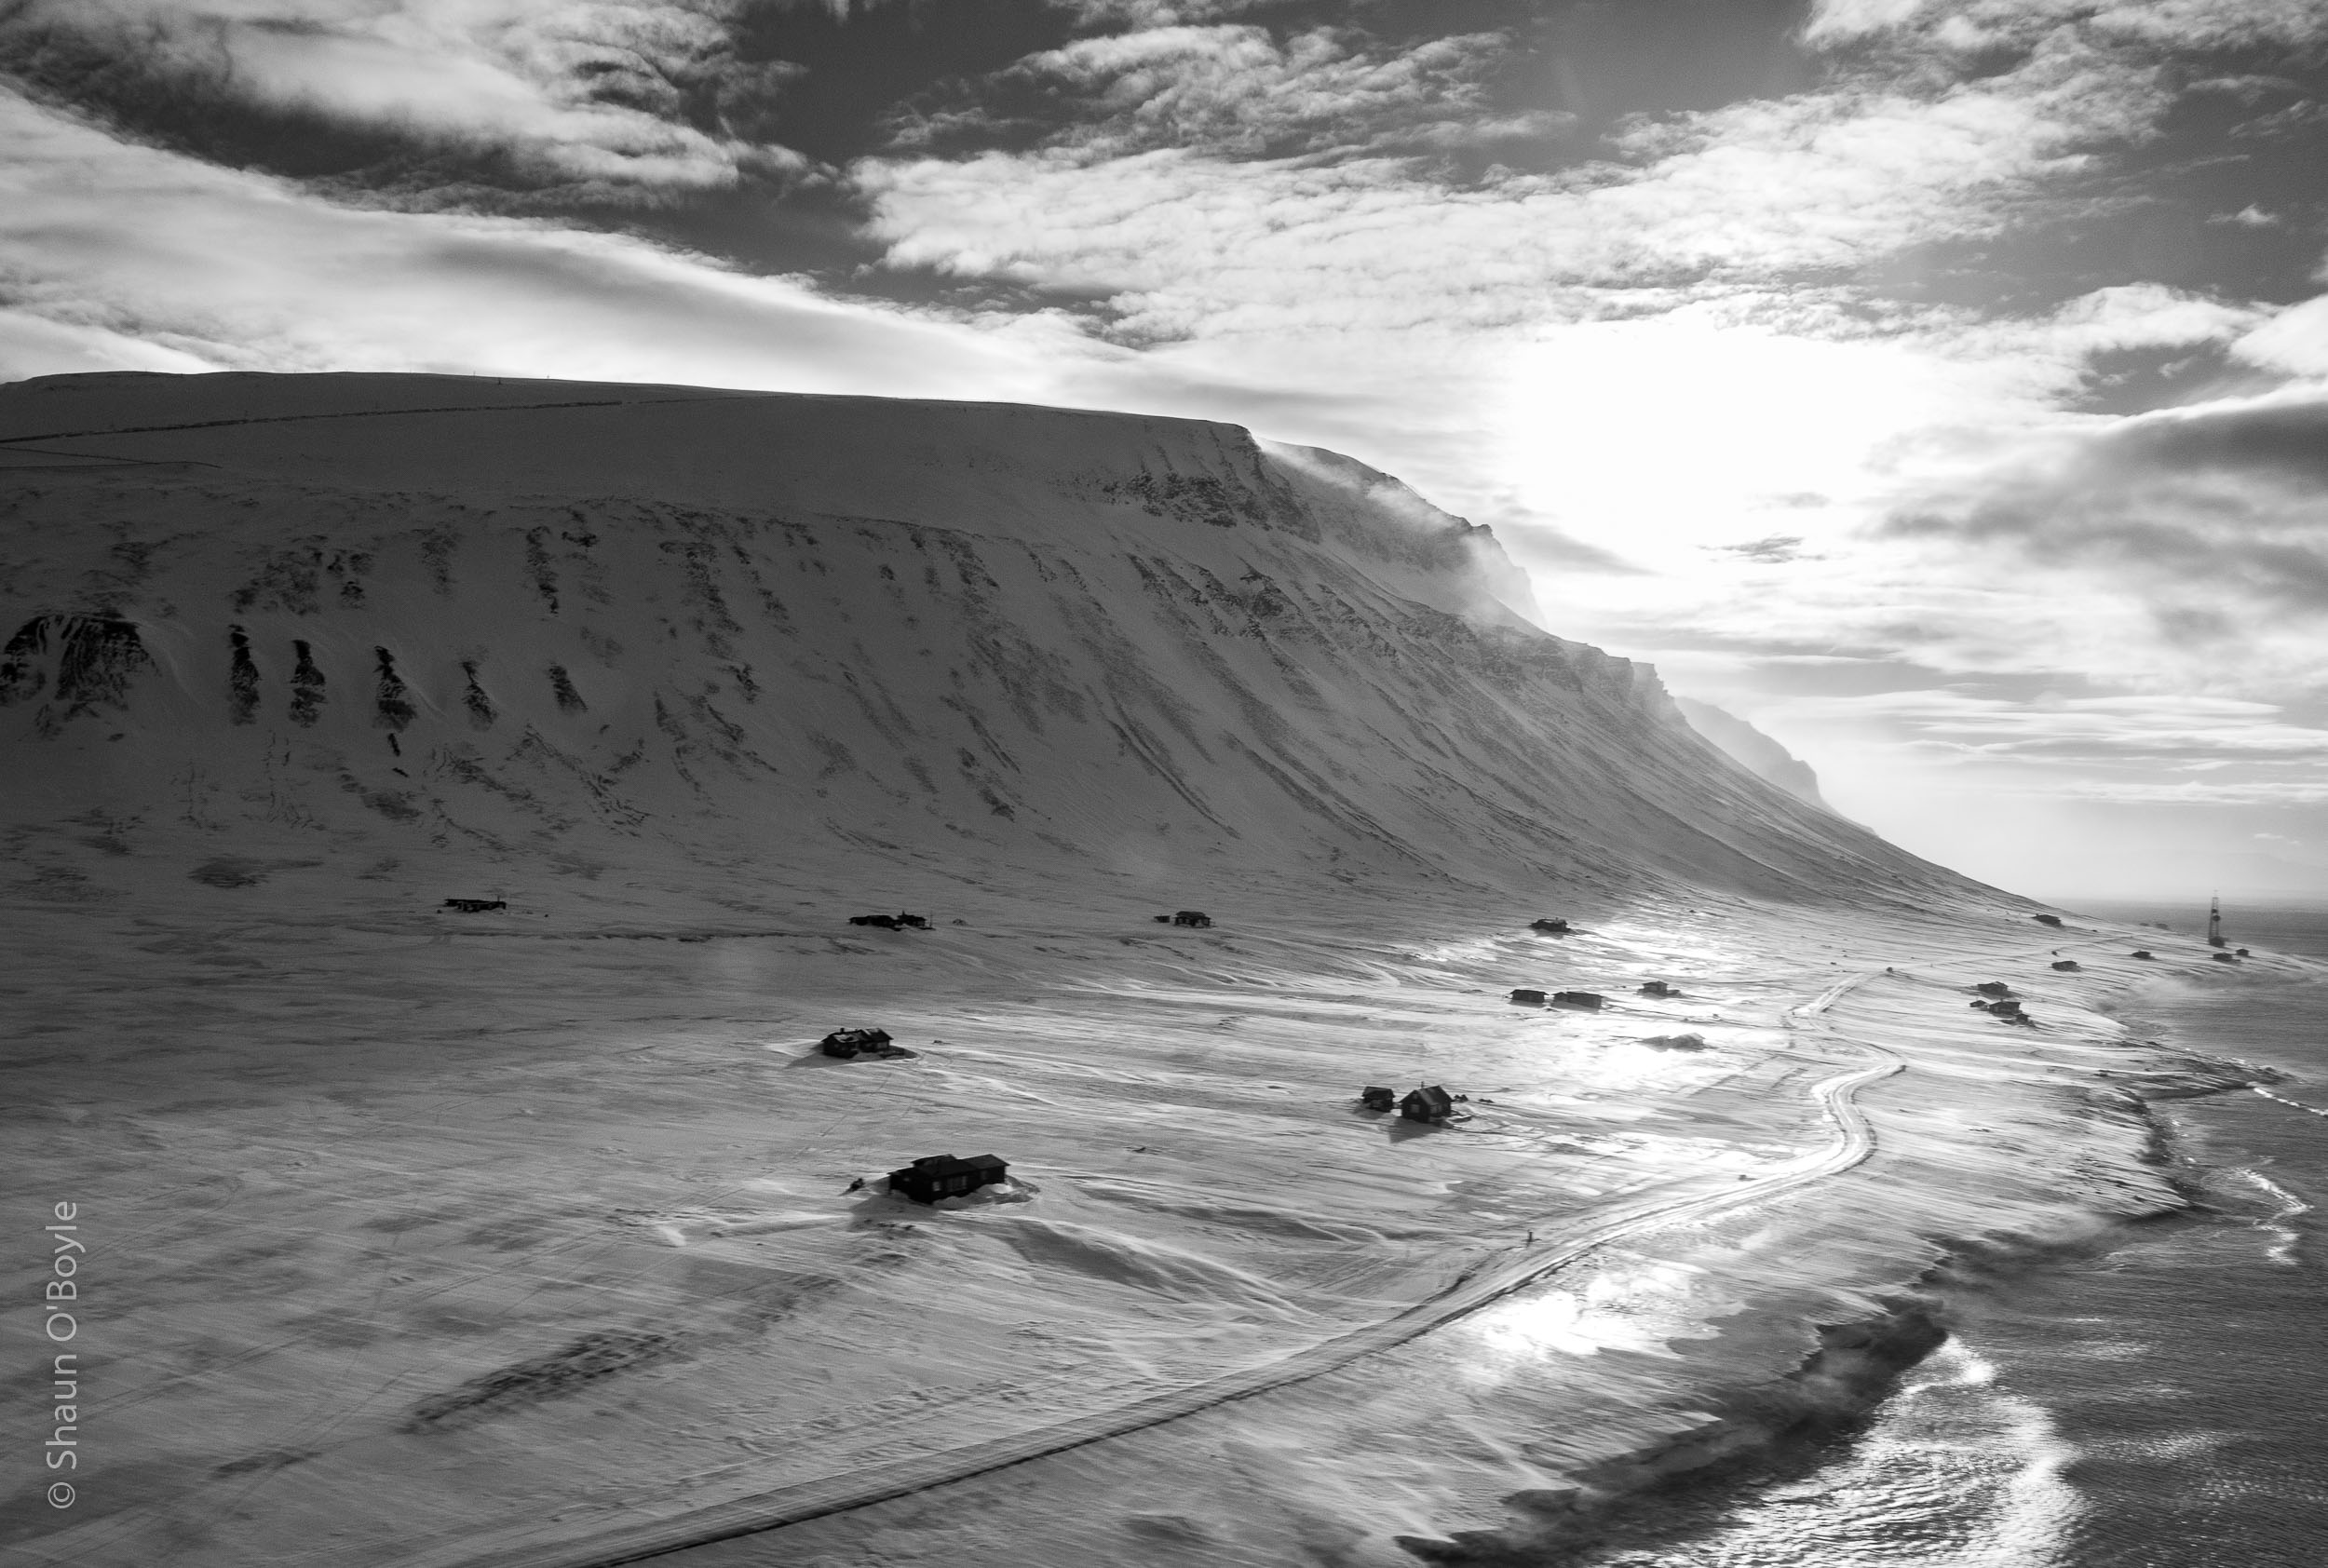 Vestpynten, Spitsbergen on approach to Longyeabyen